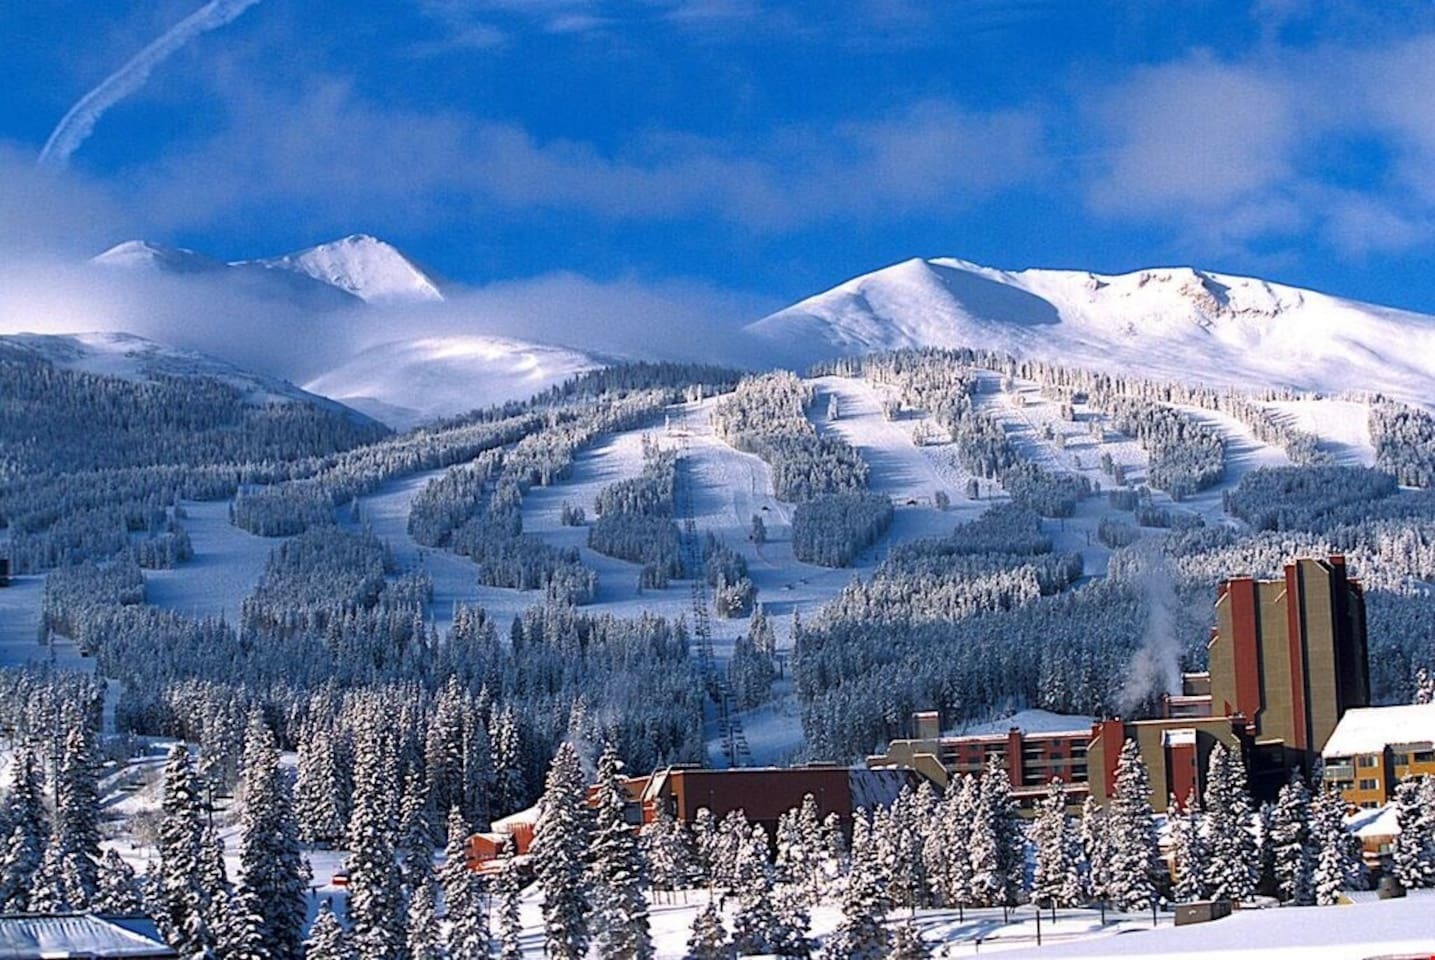 Snow-capped Breckenridge Mountain makes for an impressive view.